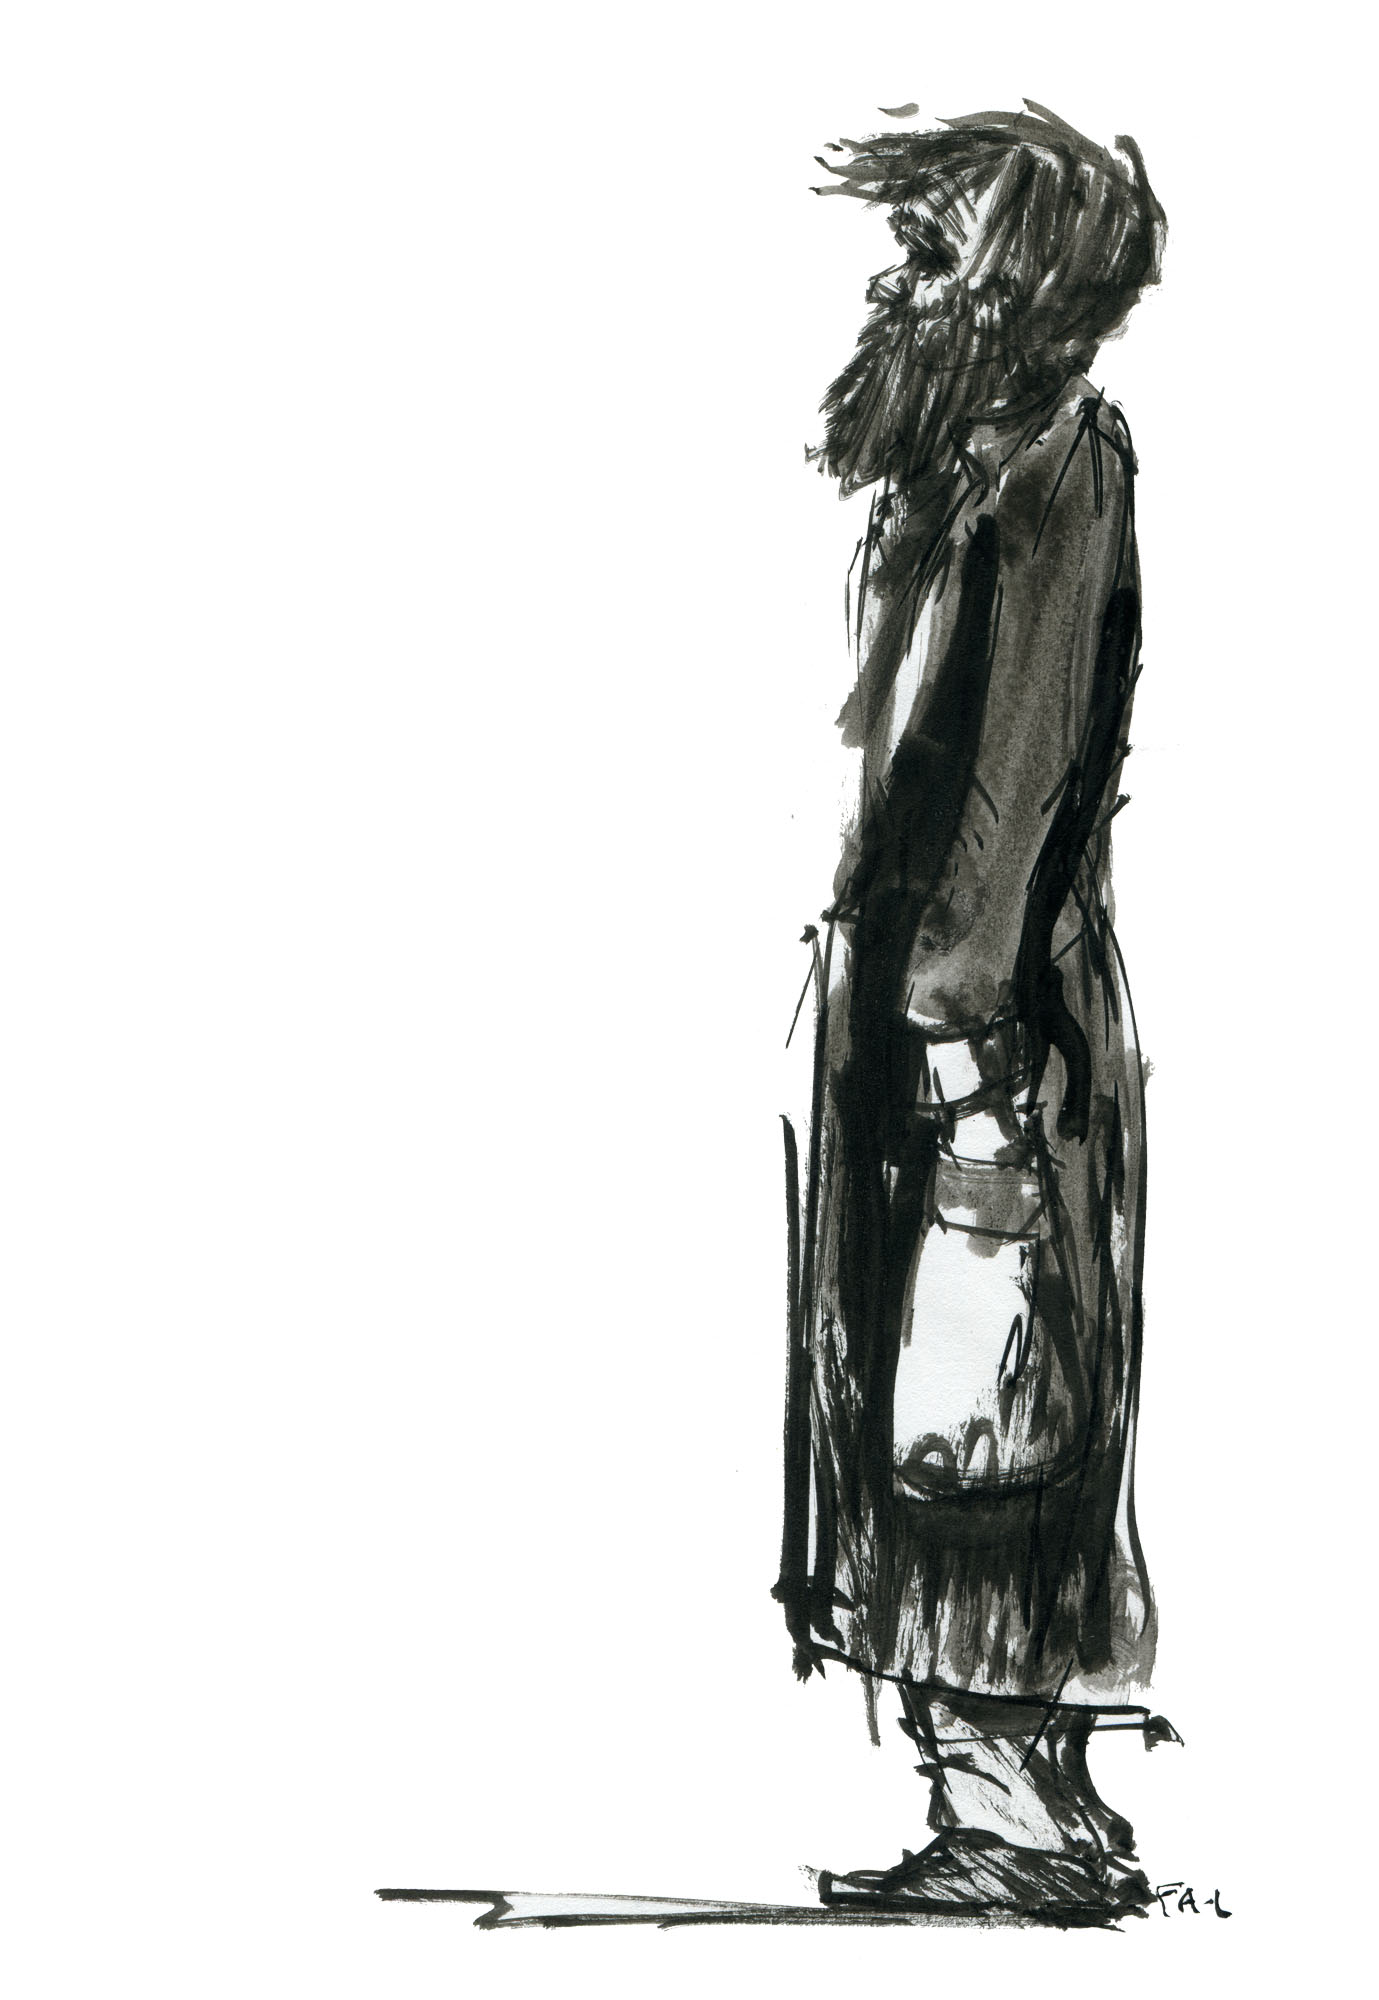 Ink Sketch Man In Long Coat And Beard Side View By Frits Ahlefeldt Fss1 Hiking Org Hiking Philosophy